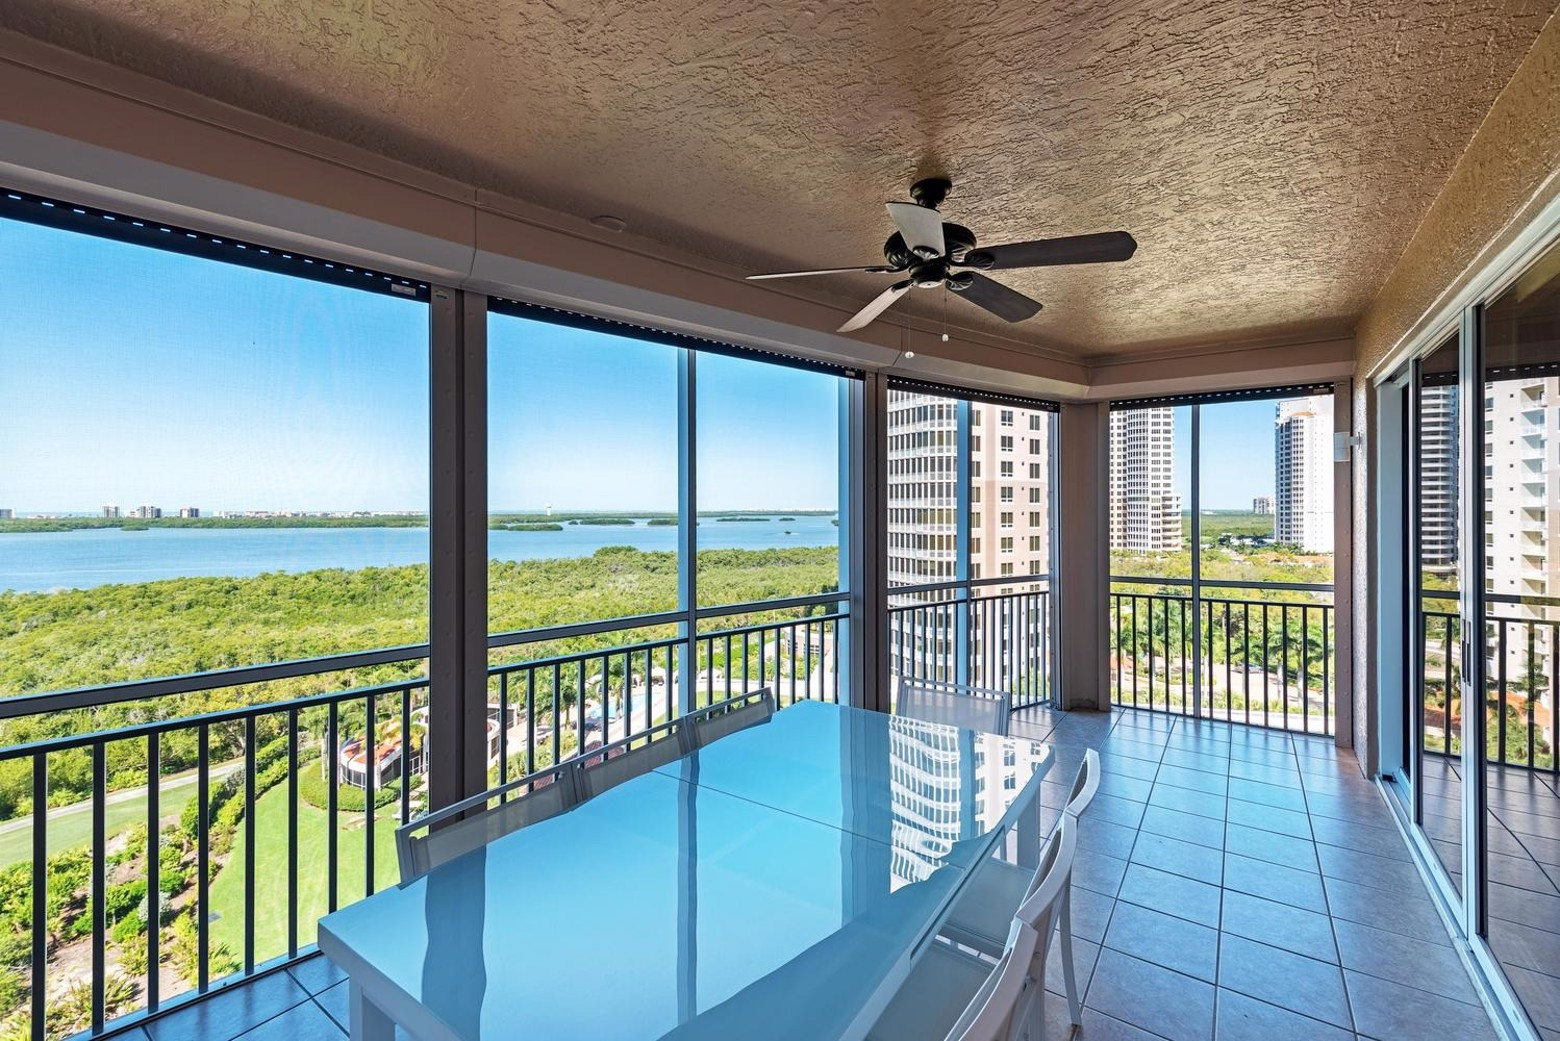 Bonita Springs Luxury Condo image